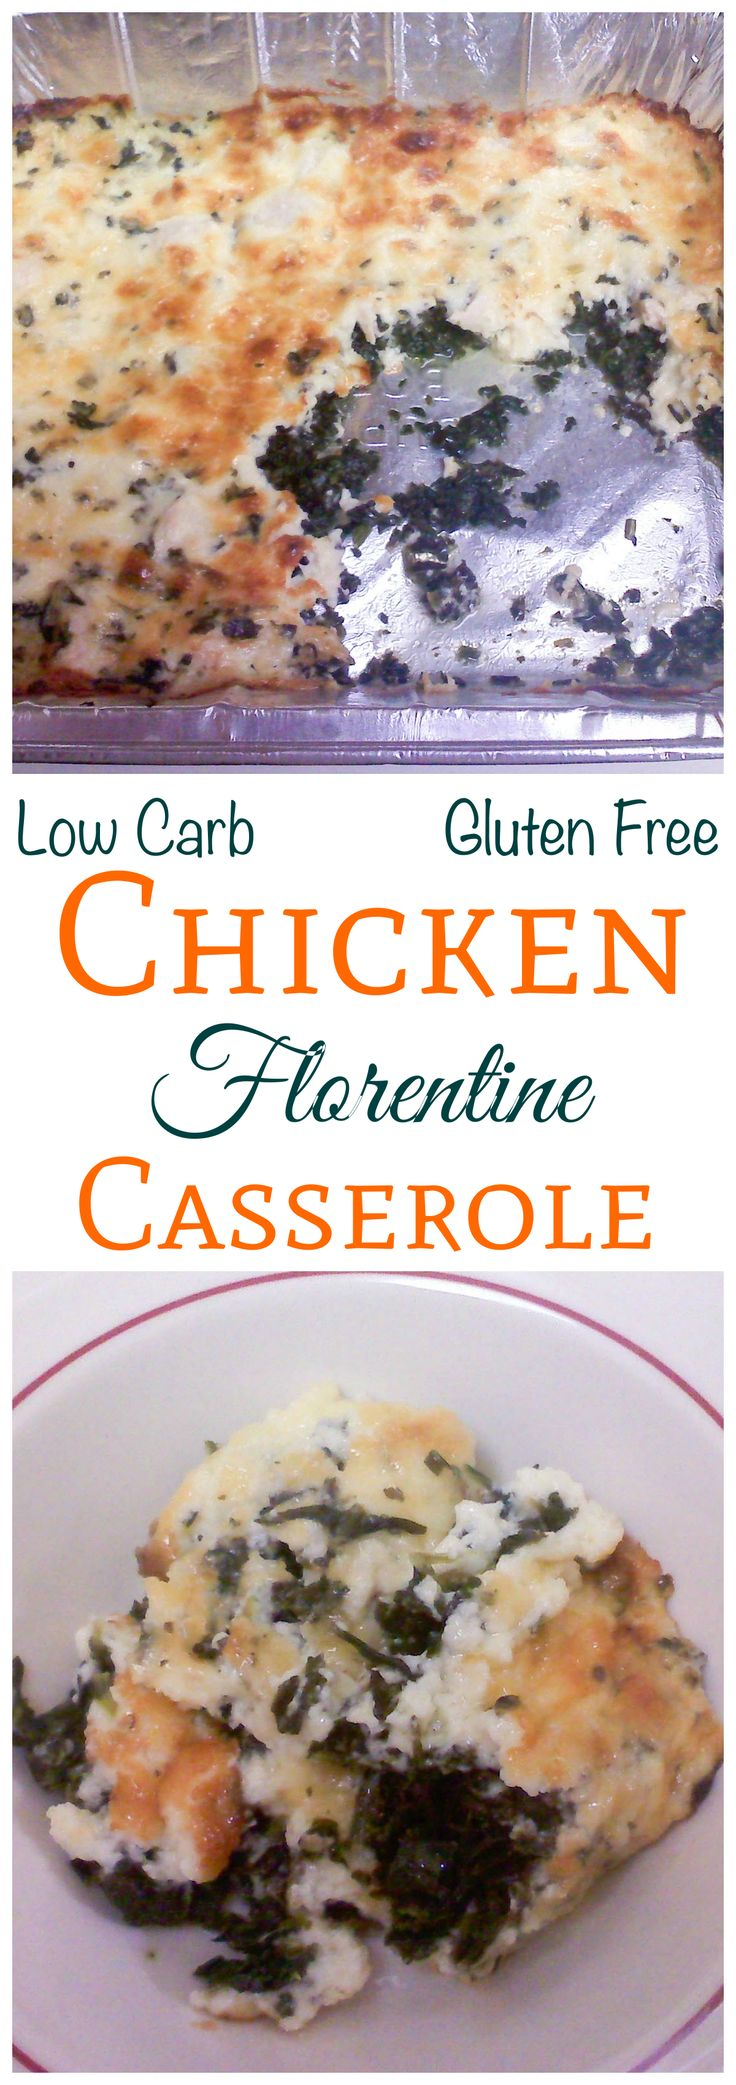 This low carb gluten free chicken florentine casserole is quick and easy to prepare. It's a creamy blend of cut chicken, spinach and Parmesan cheese.